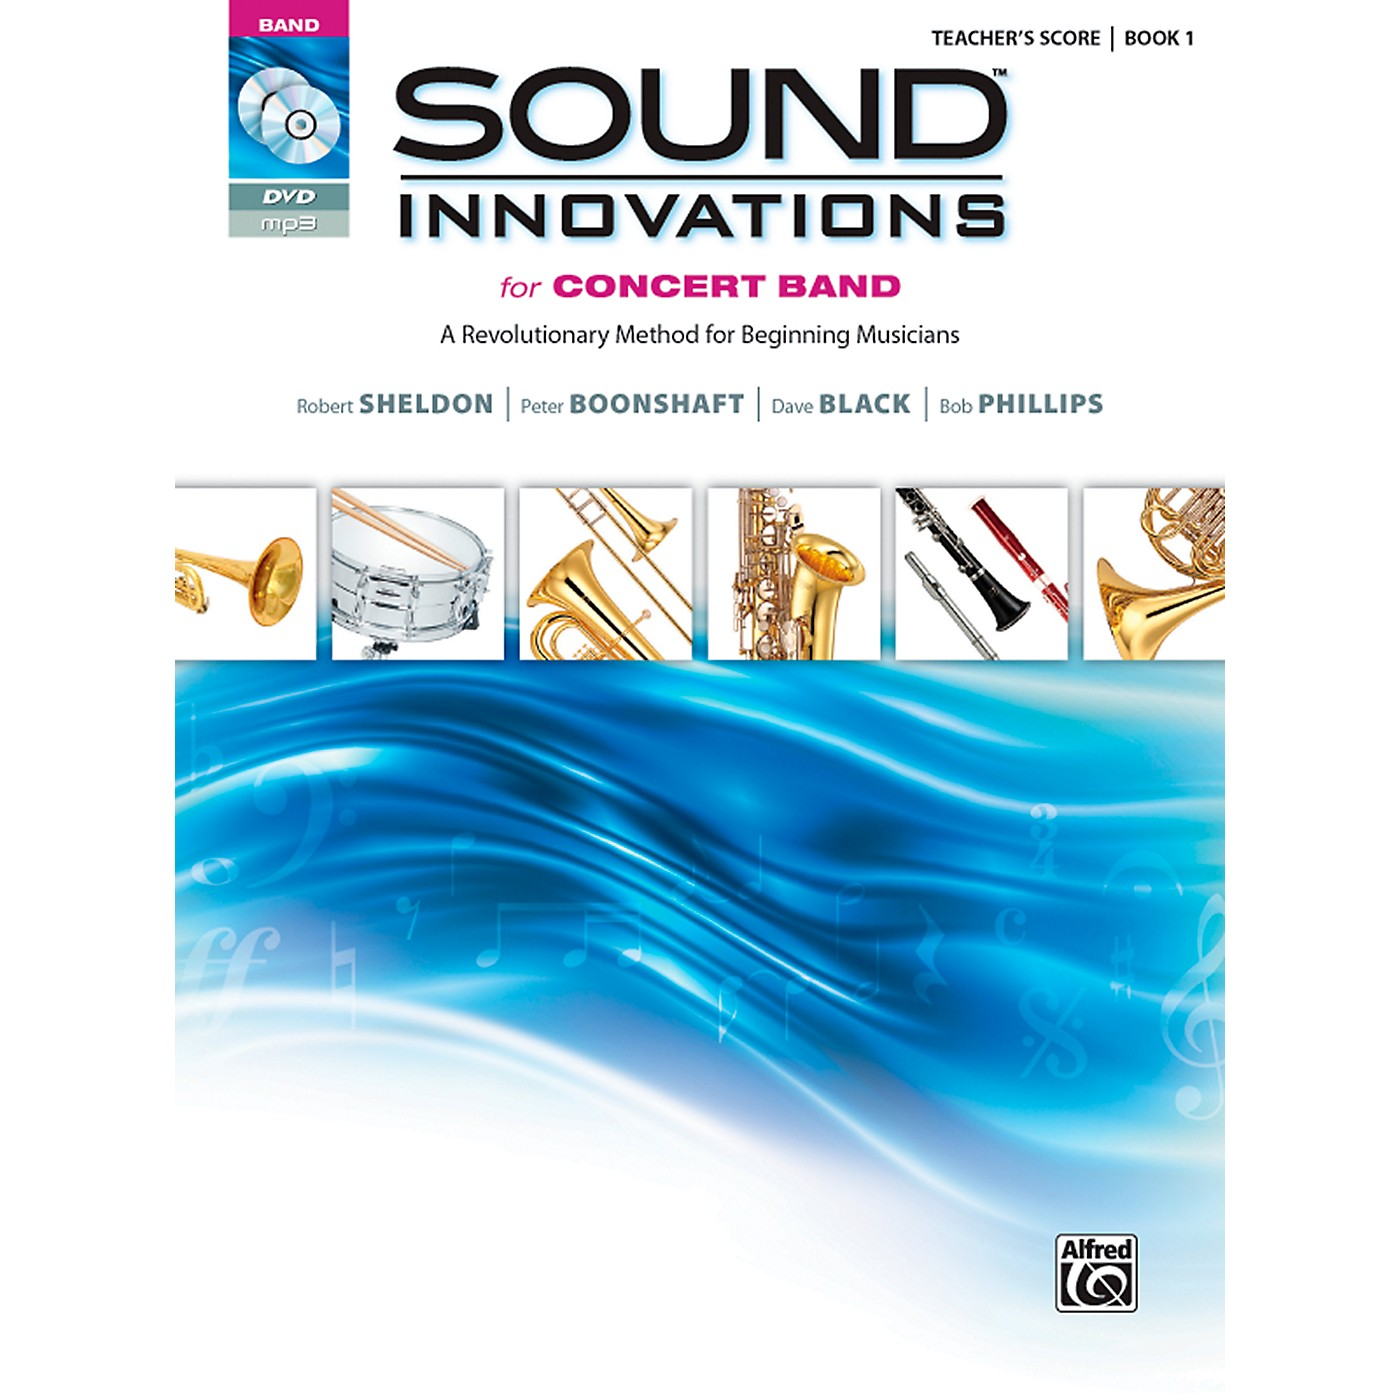 Alfred Sound Innovations for Concert Band, Book 1 Conductor's Score thumbnail